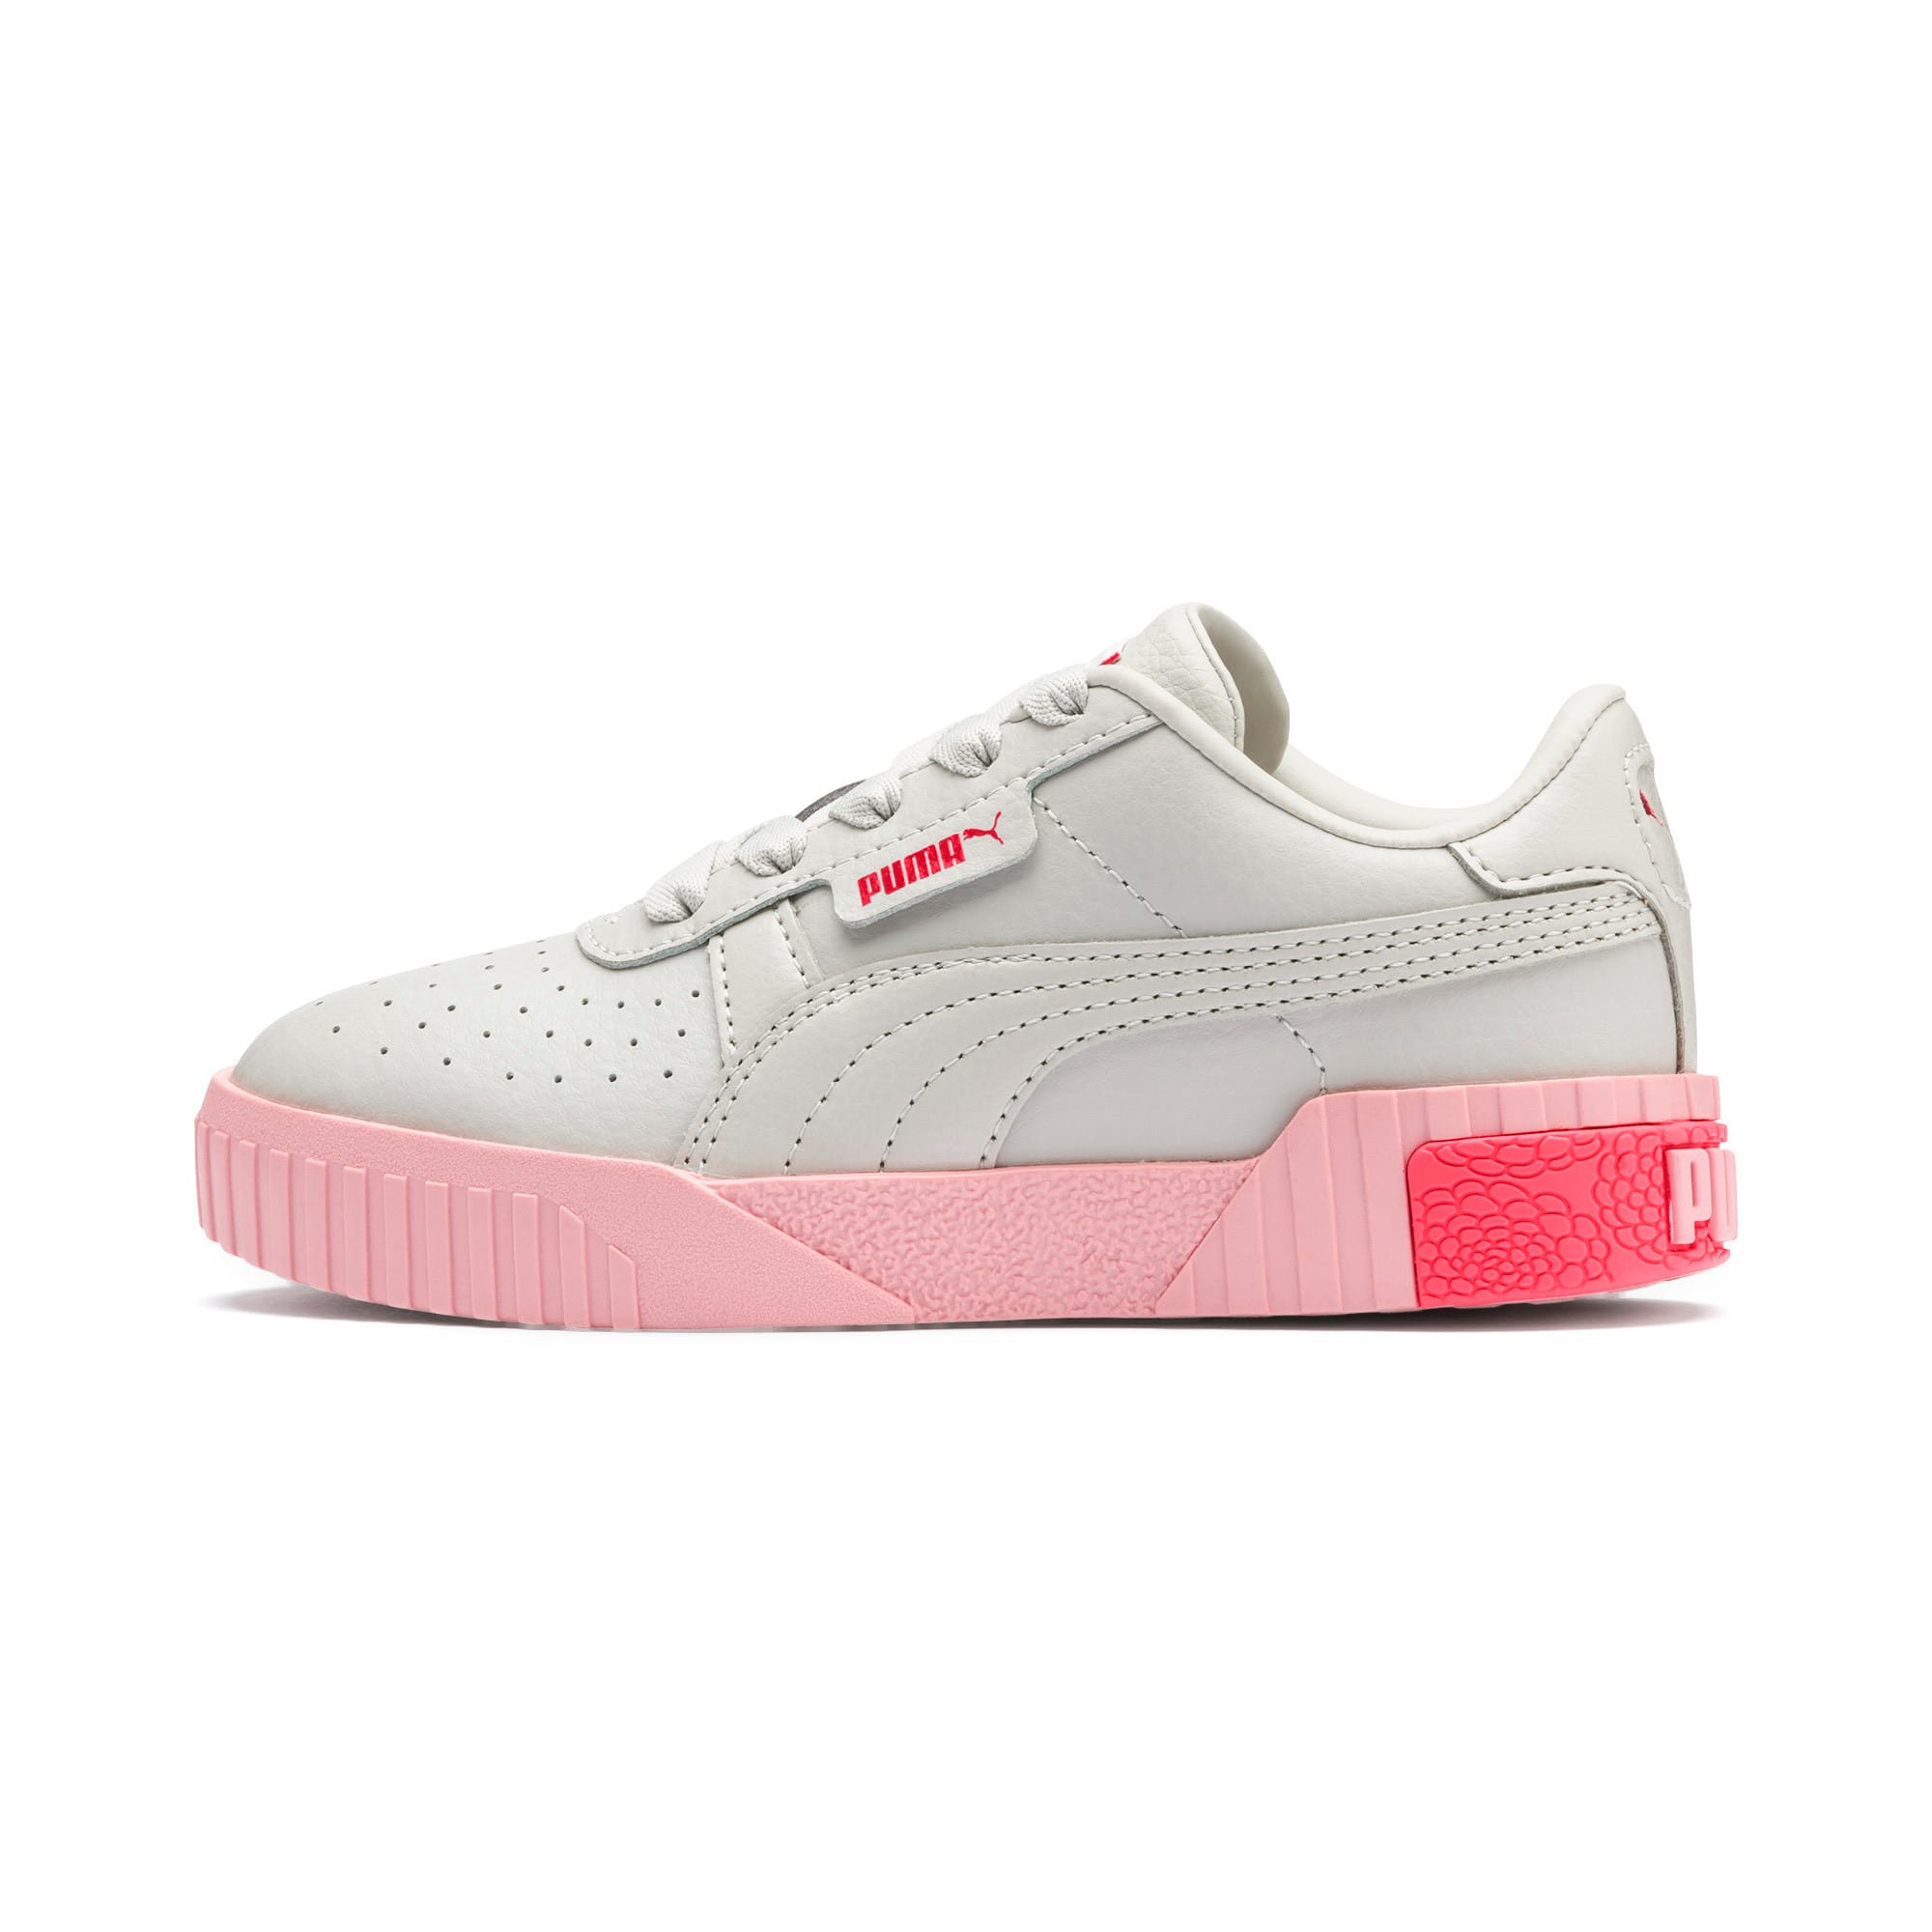 Thumbnail 1 of Cali Kids' Mädchen Sneaker, Gray Violet-Calypso Coral, medium